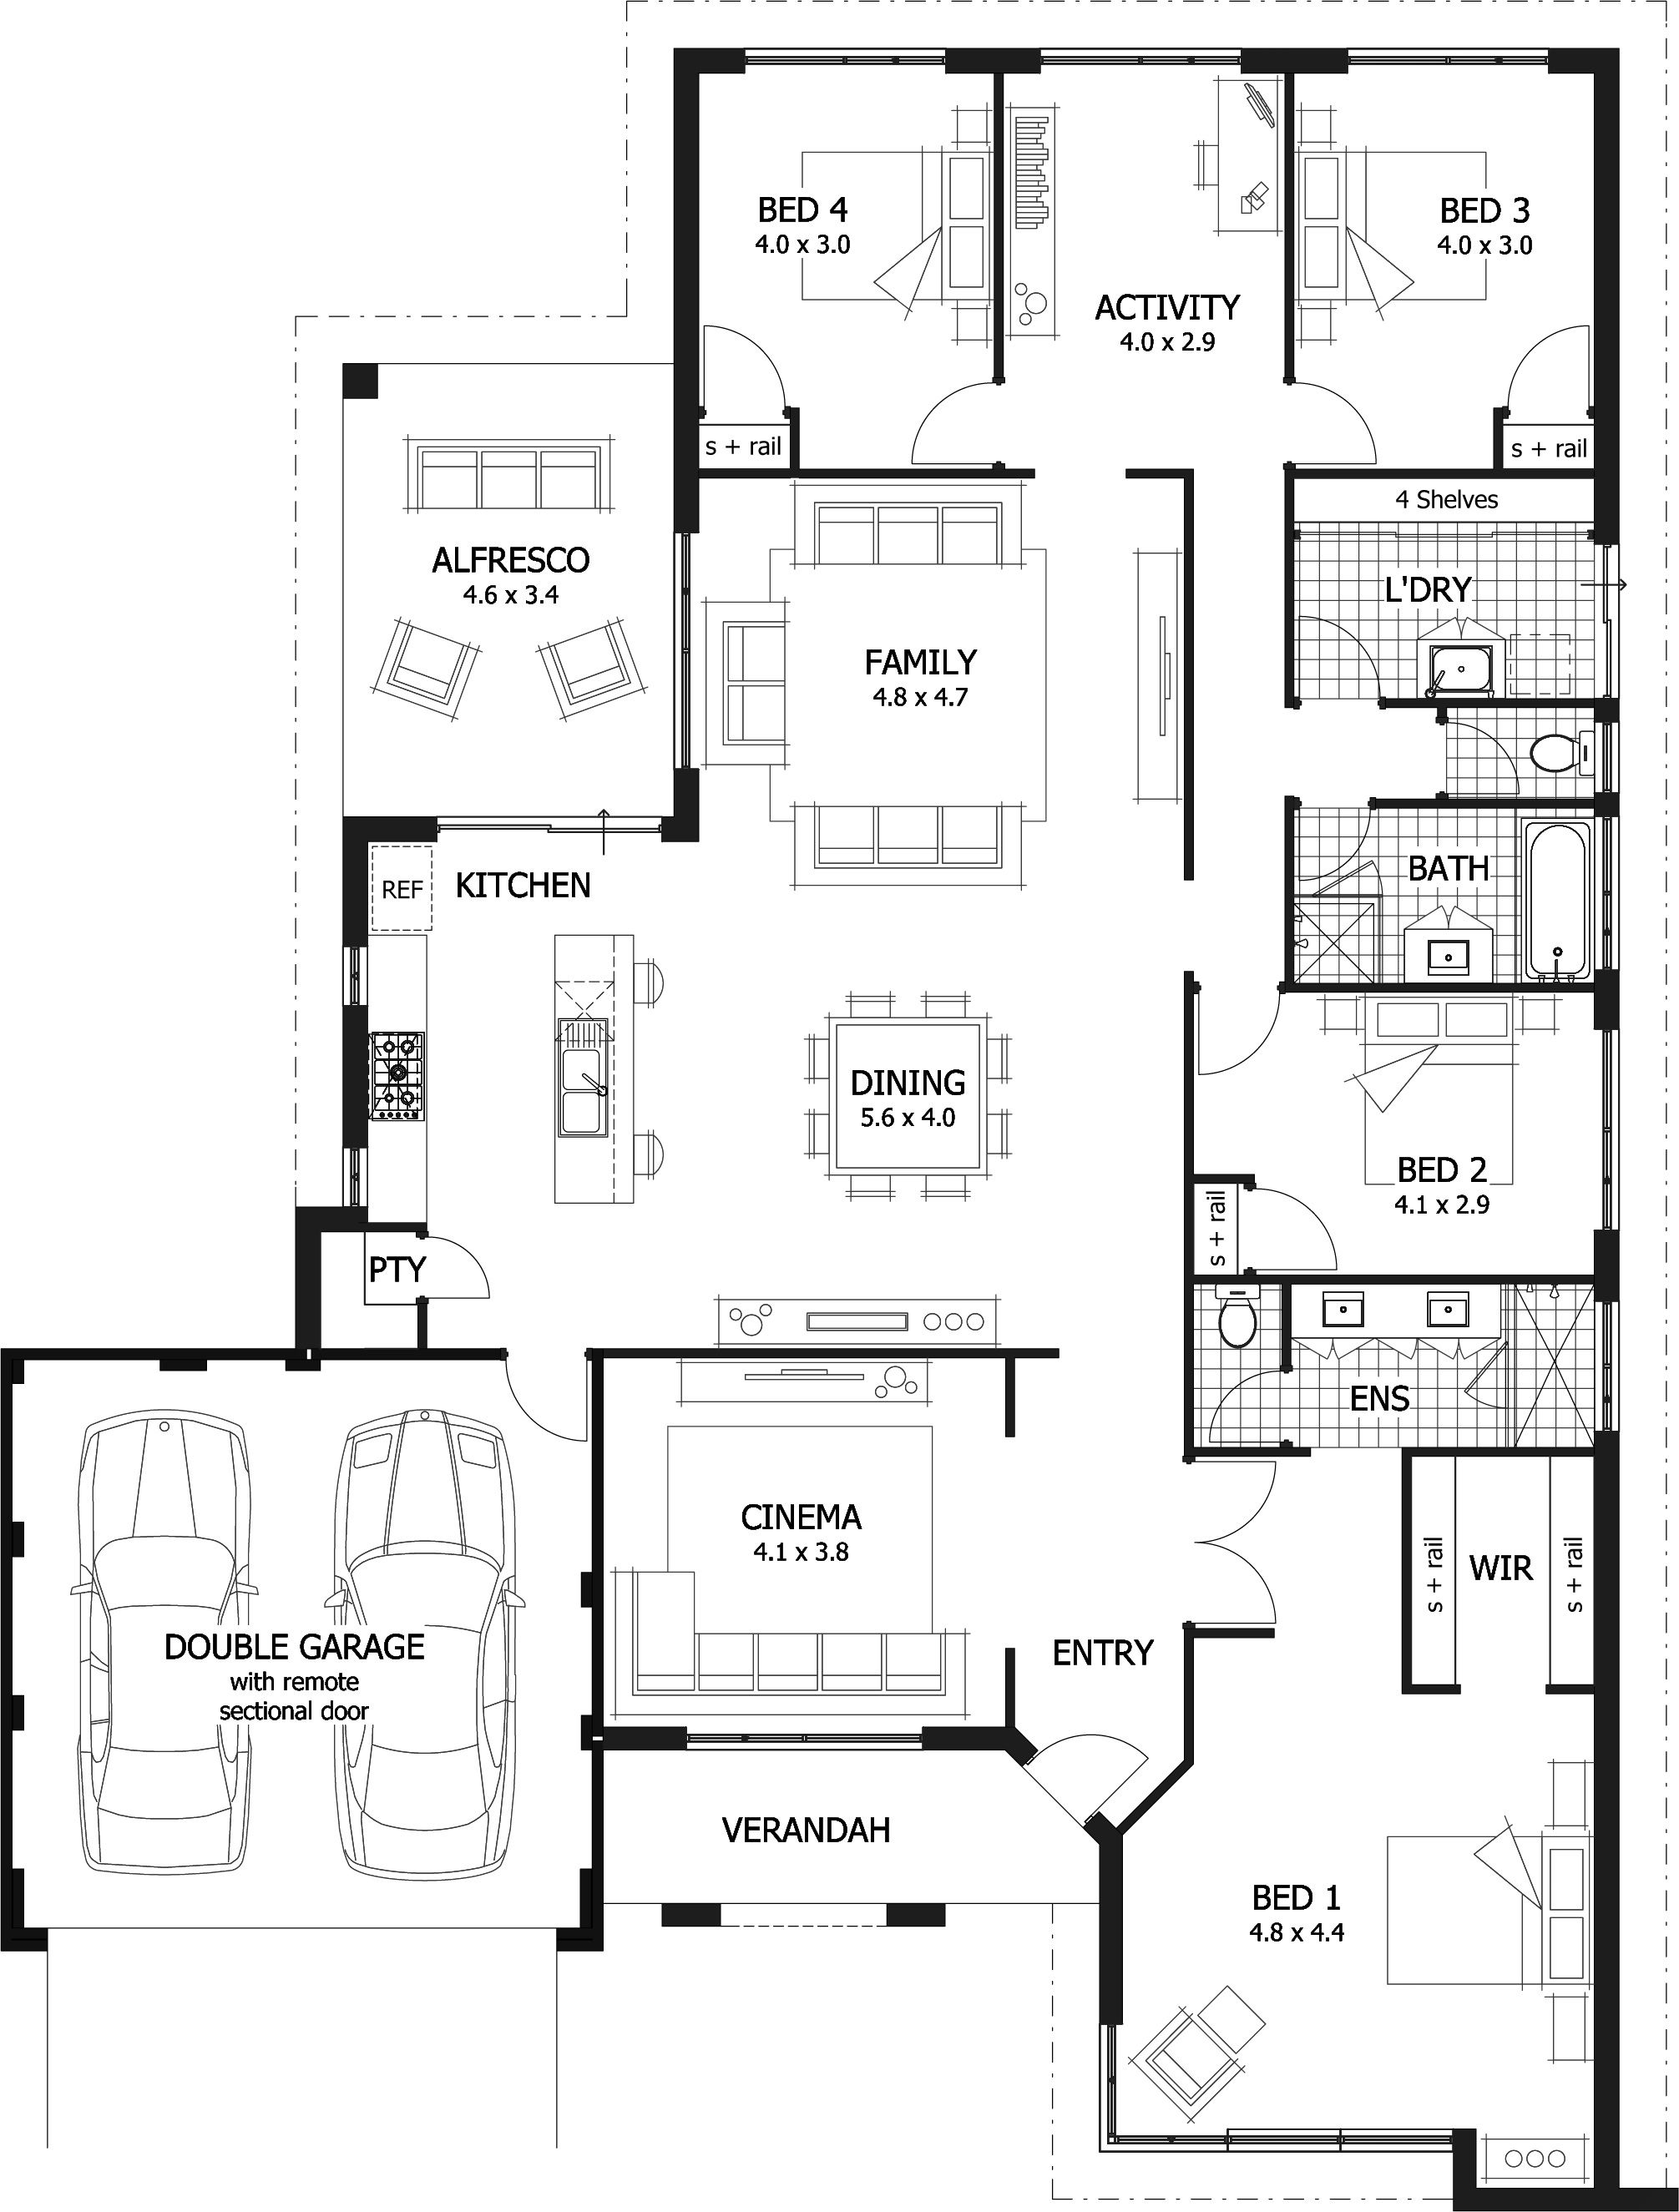 4 Bedroom House Plans Home Designs 4 Bedroom House Plans